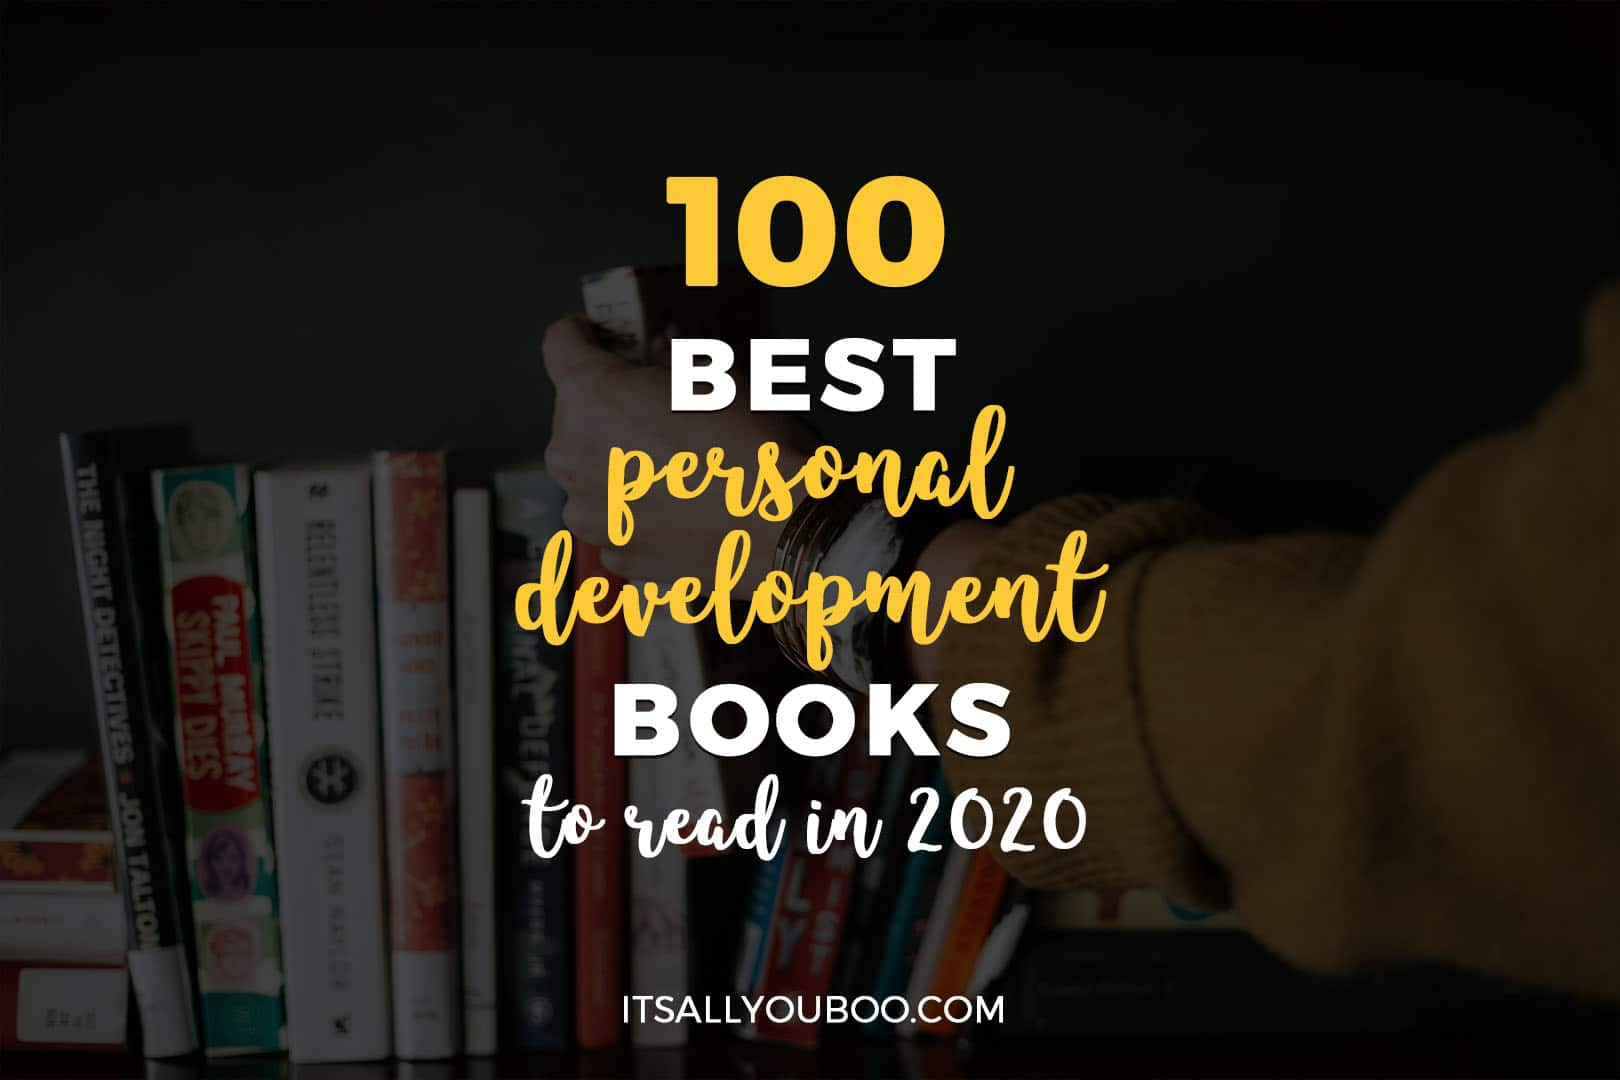 100 Best Personal Development Books to Read in 2020